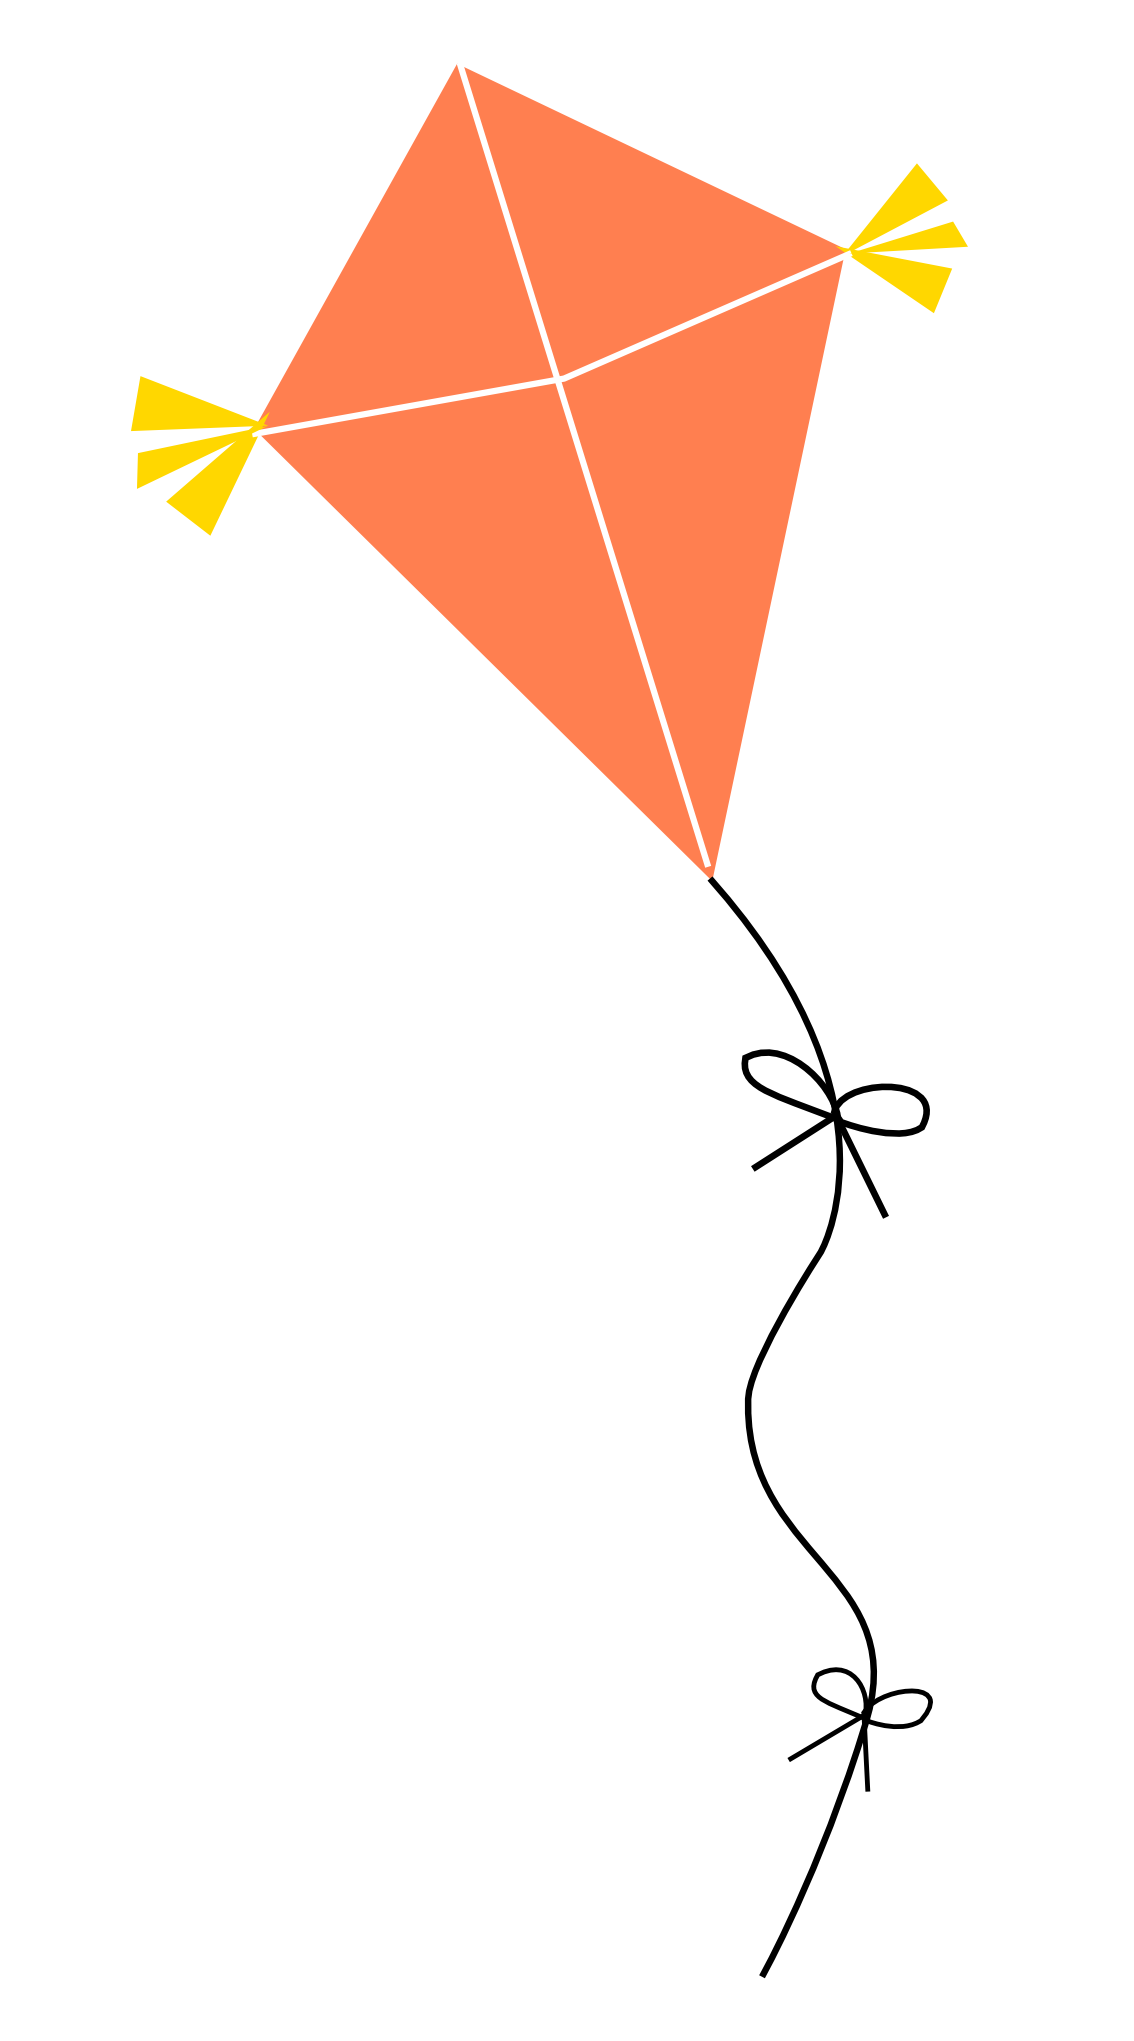 kite png transparent image pngpix #34911